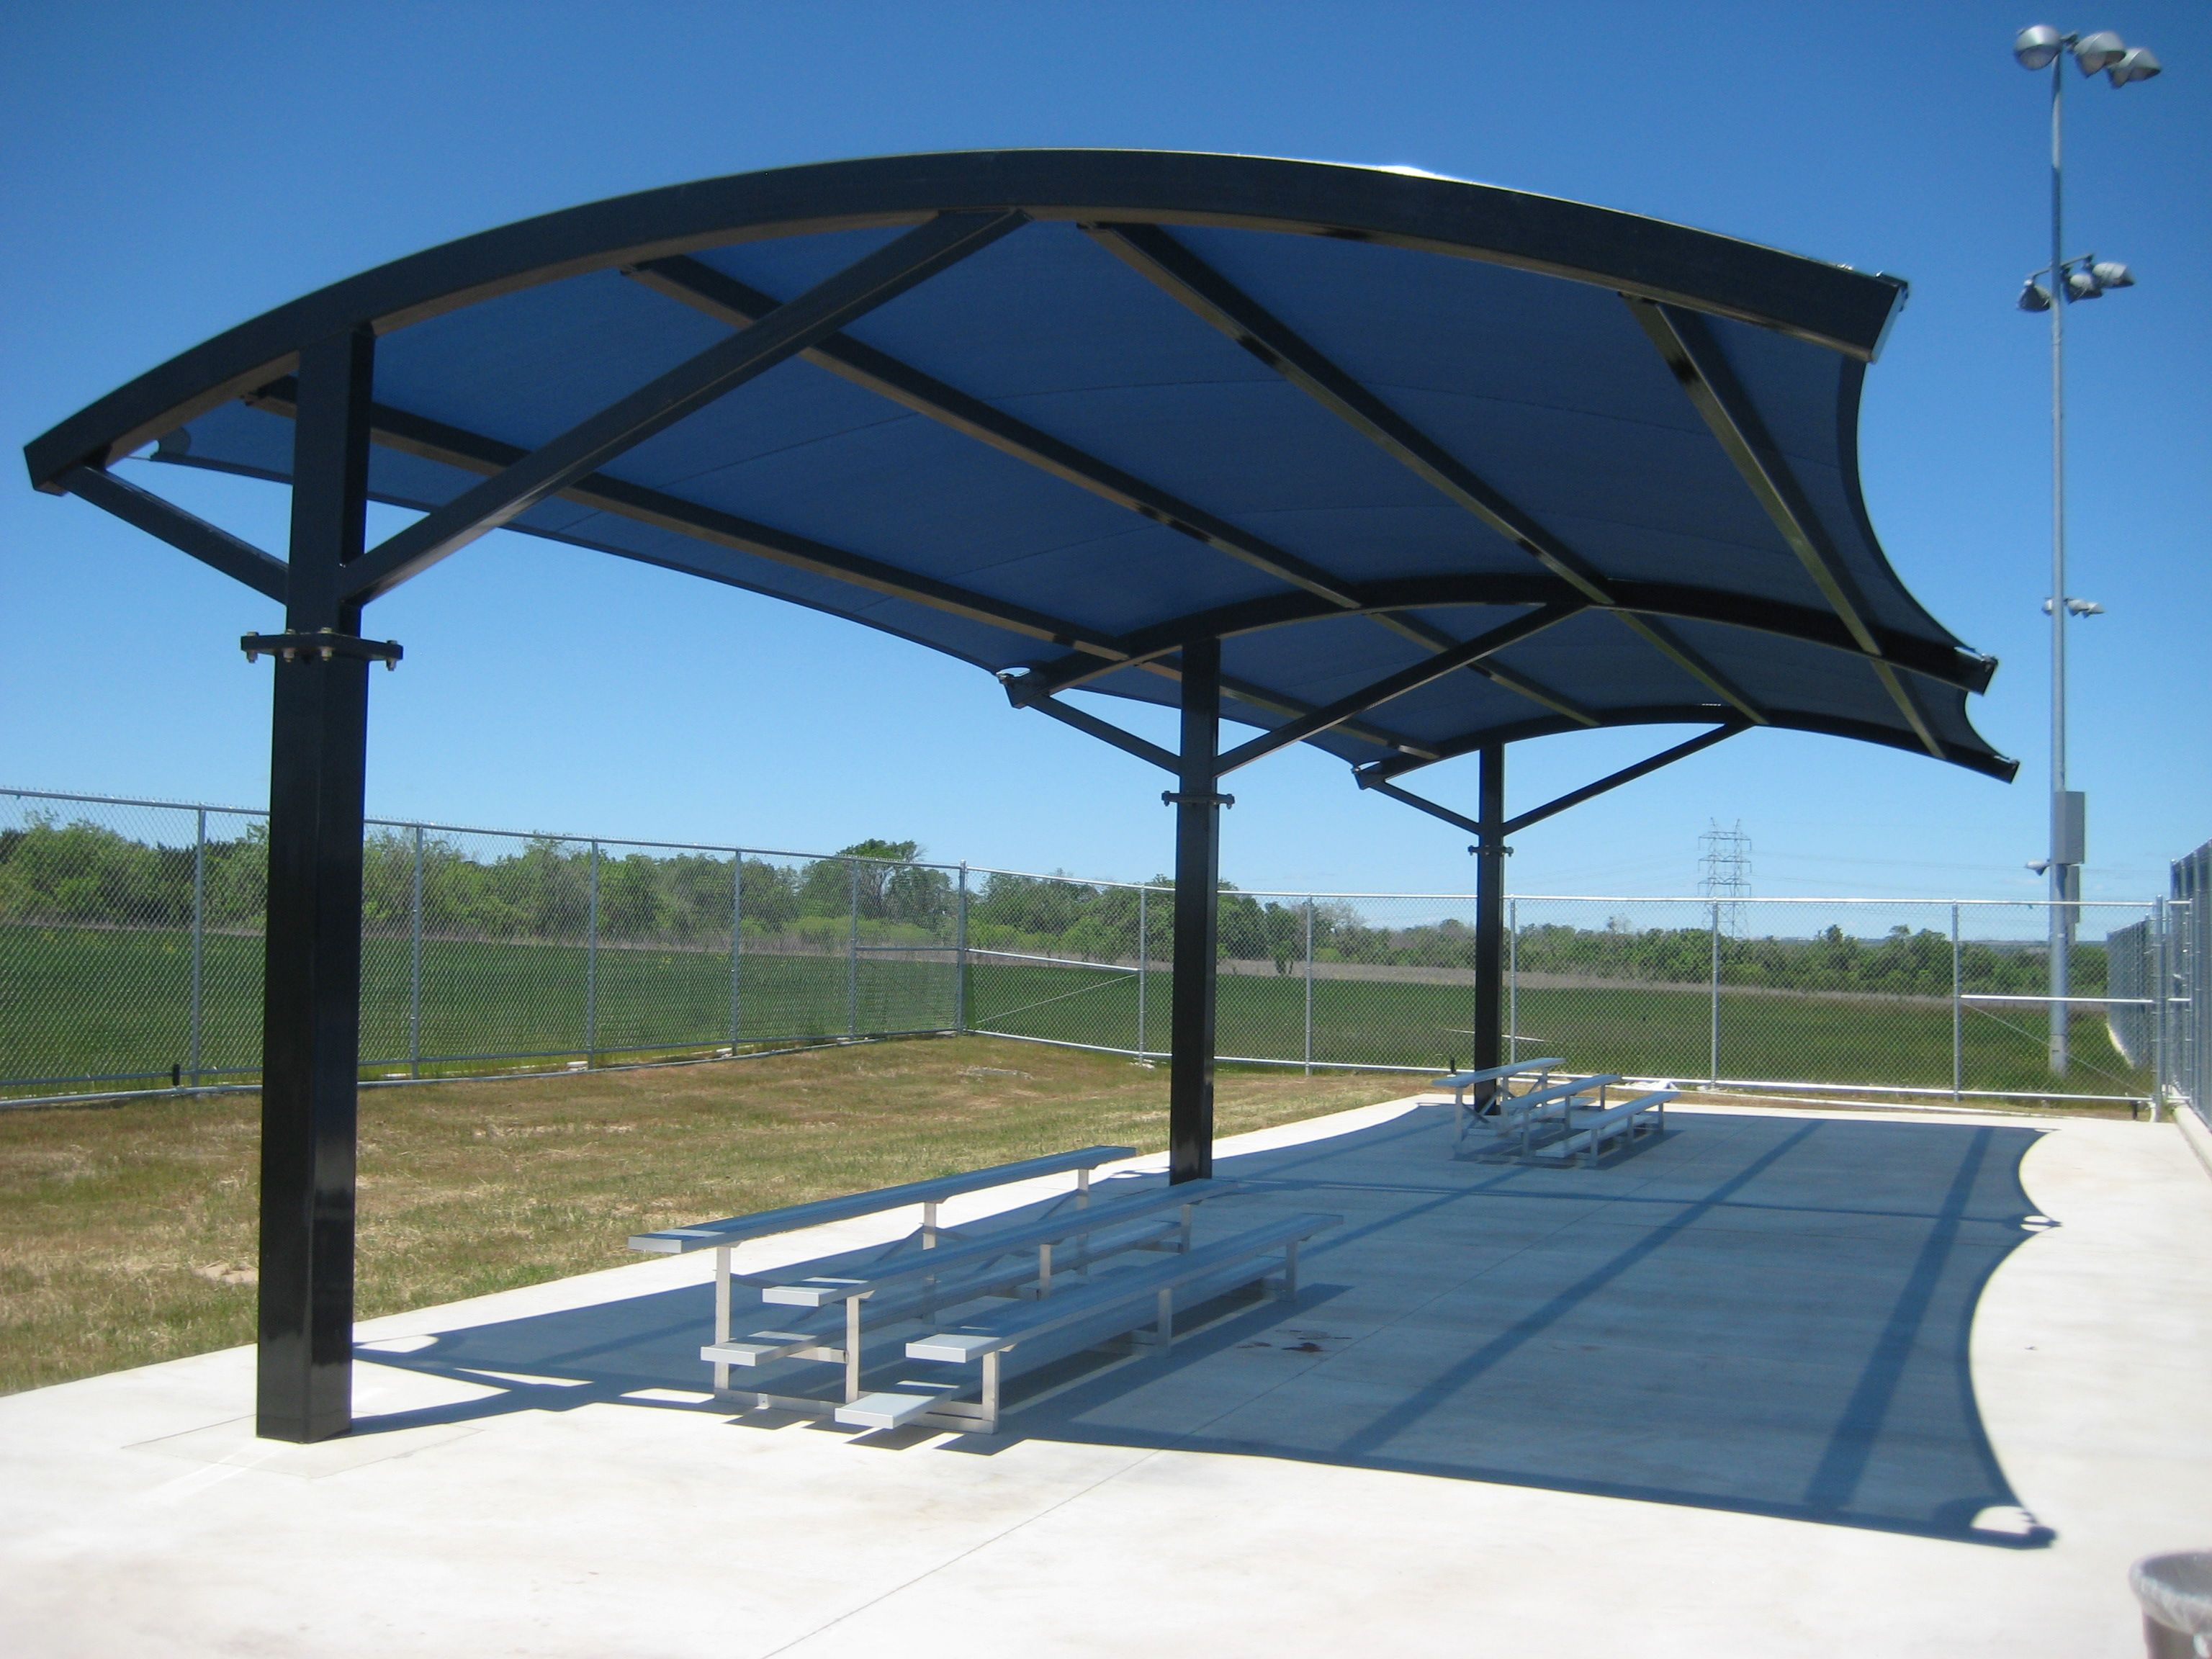 Carports American Steel Carports Carport Cost Carport Roof Carport Tent Commercial Carport Enclosed Metal Shade Structure Cantilever Carport Carport Designs